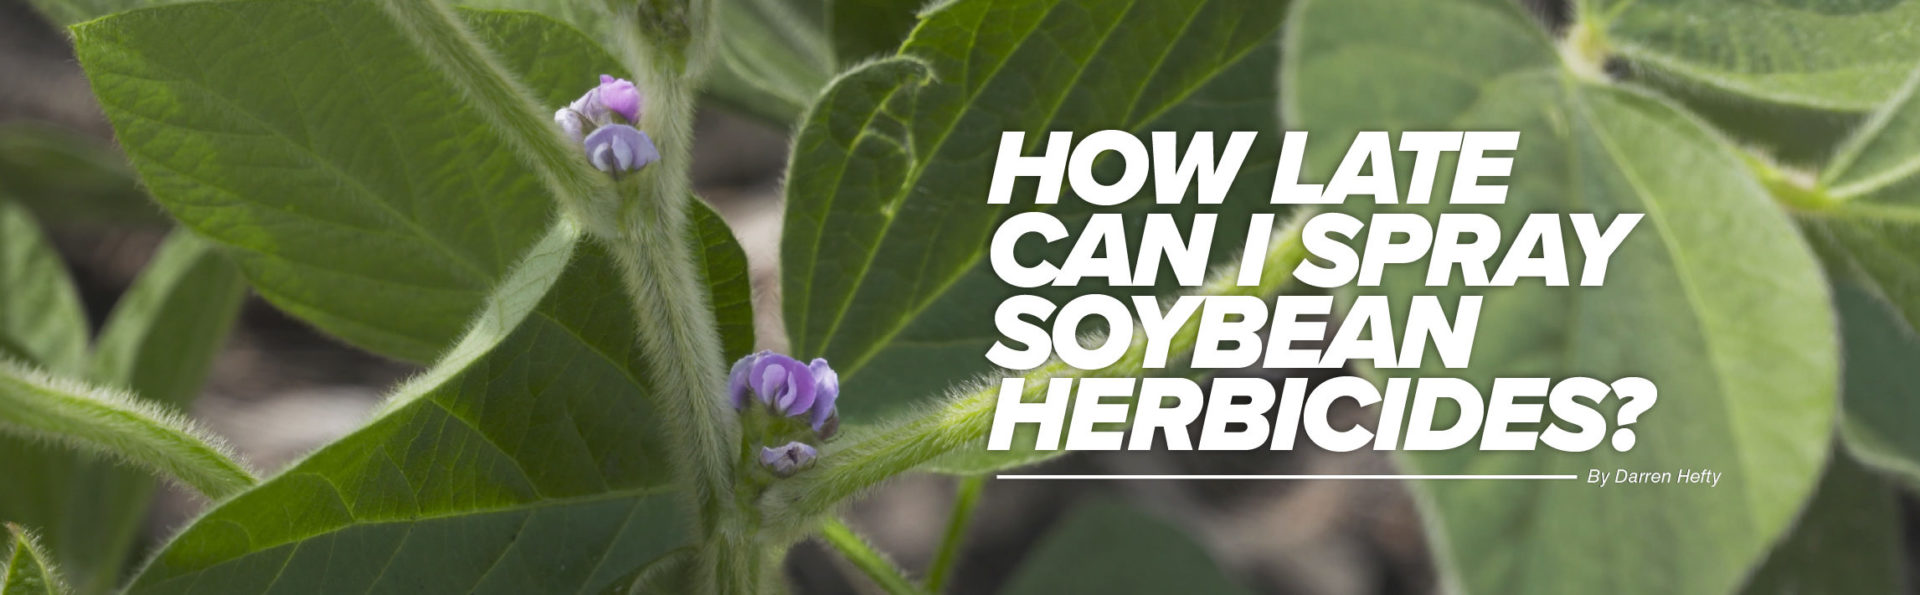 How late can I spray soybean herbicides article header image